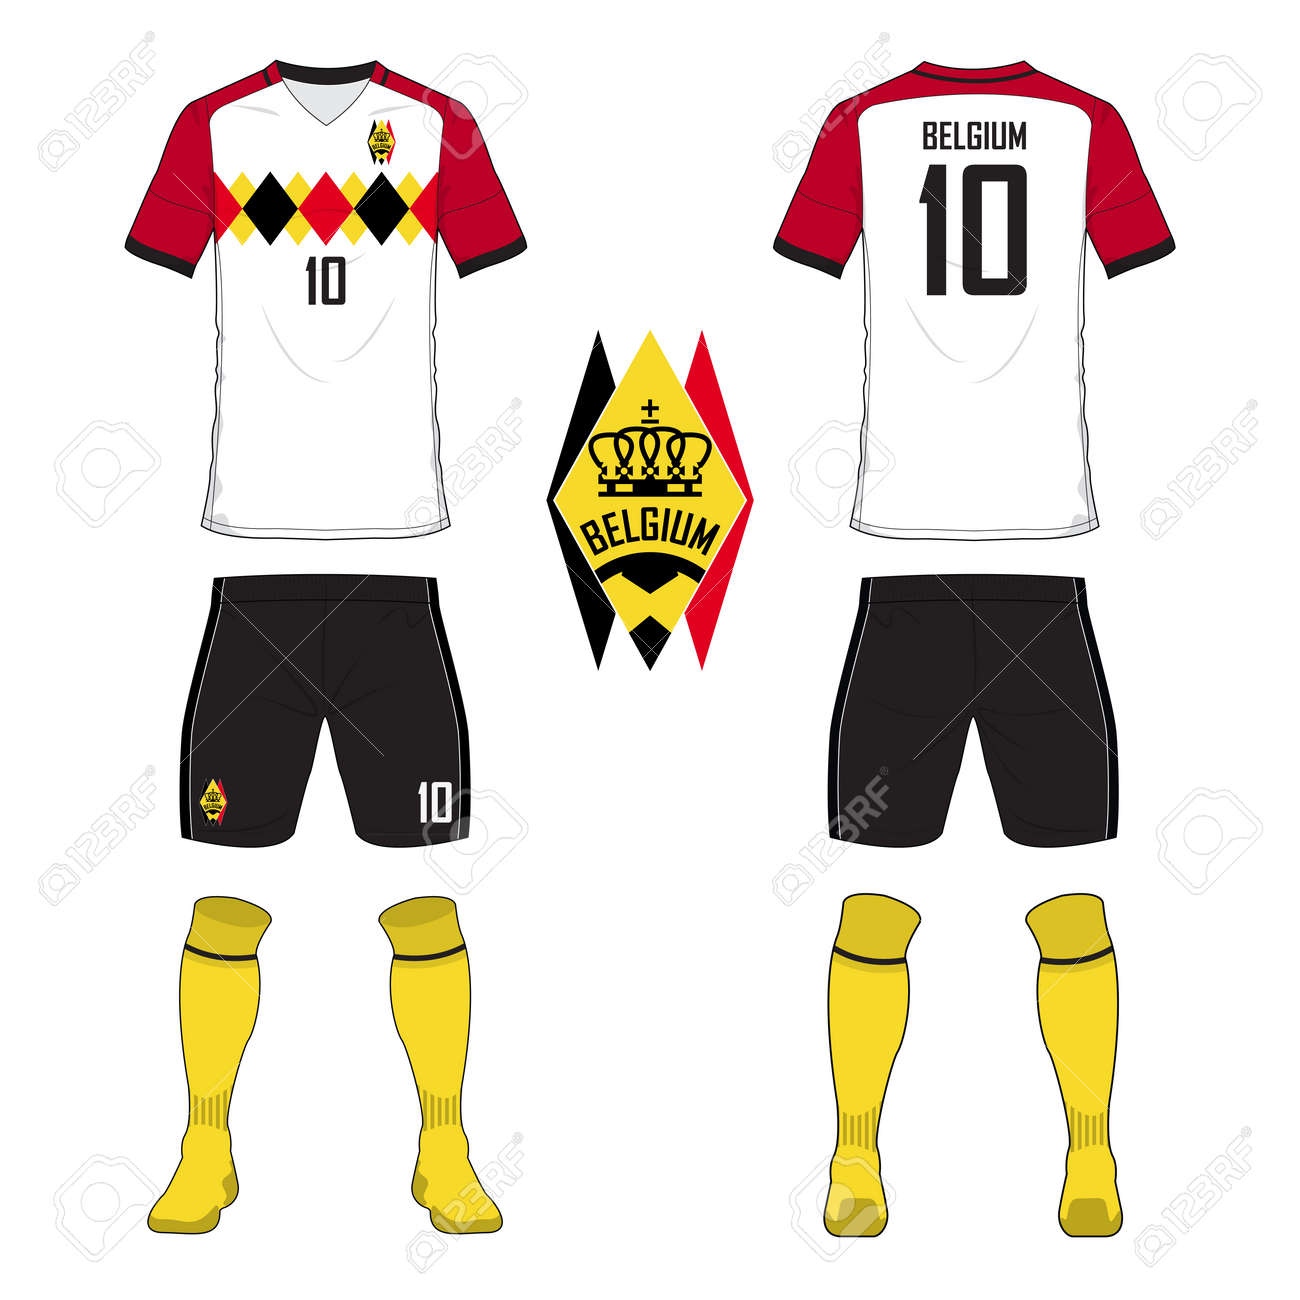 da5faa545 Set of soccer jersey or football kit template for Belgium national football  team. Front and